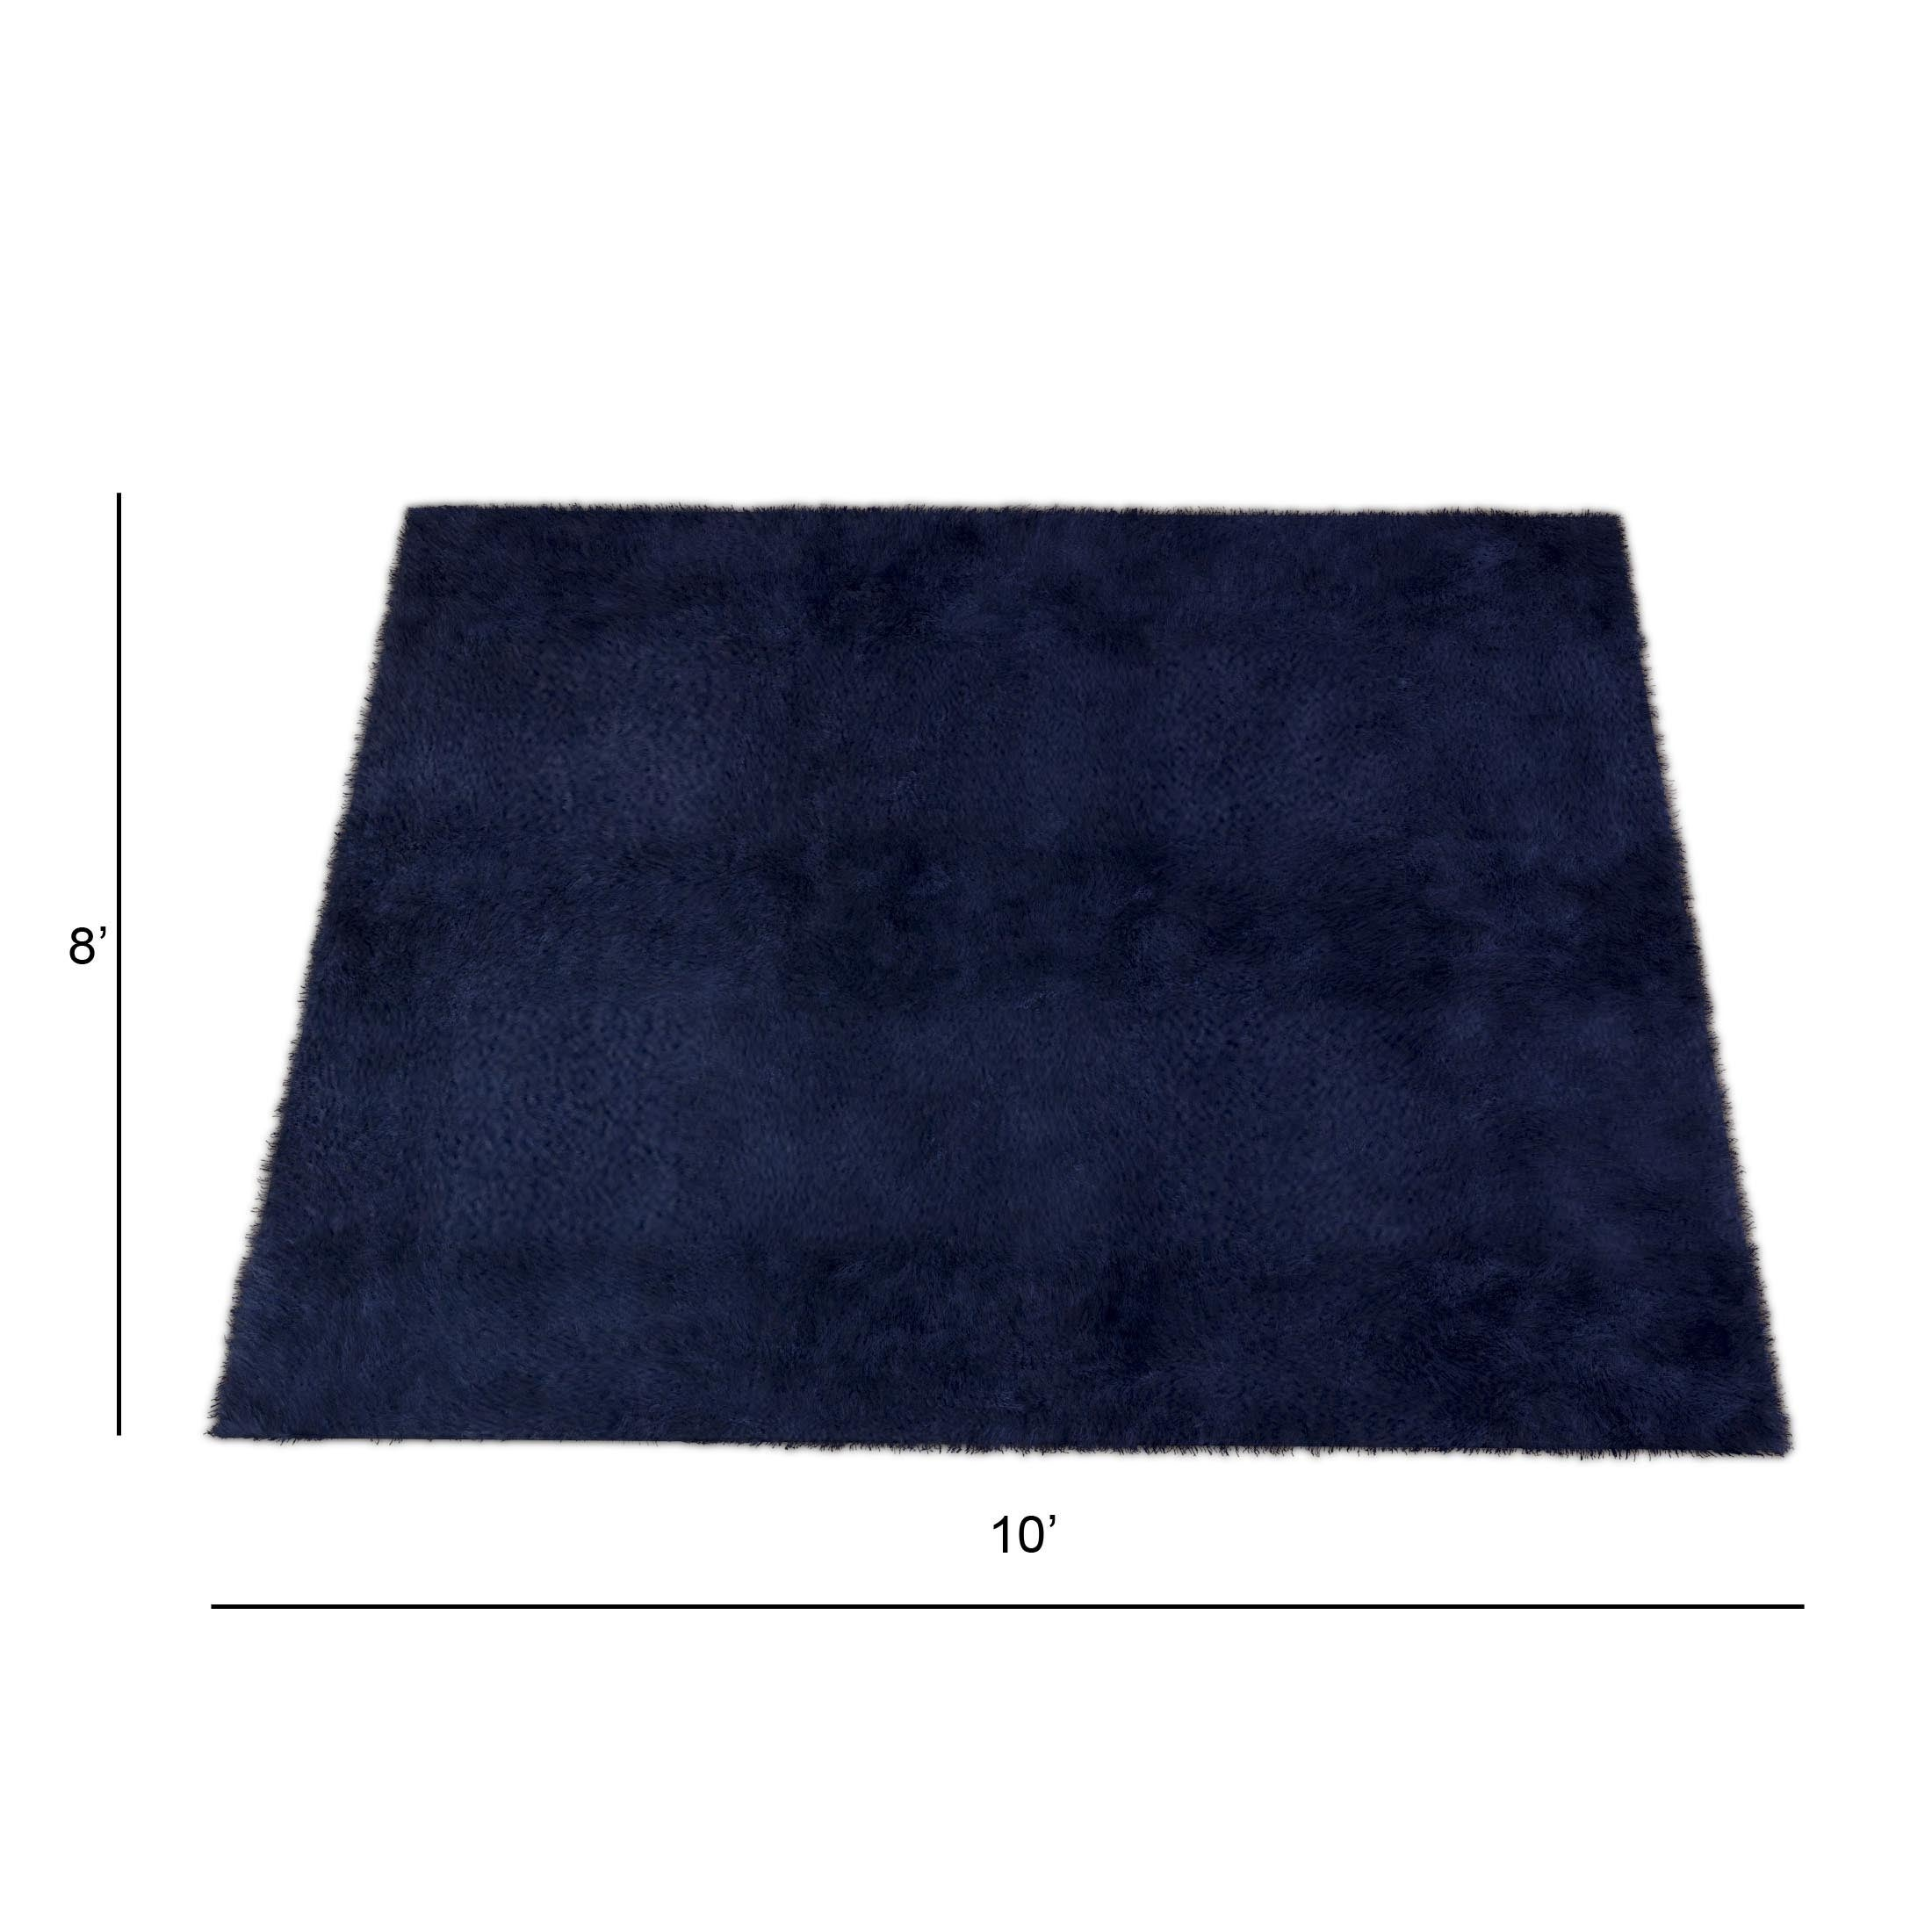 blue x decor woolmark ideas navy bautiful rug rugs new home wool area of perfect beautiful with